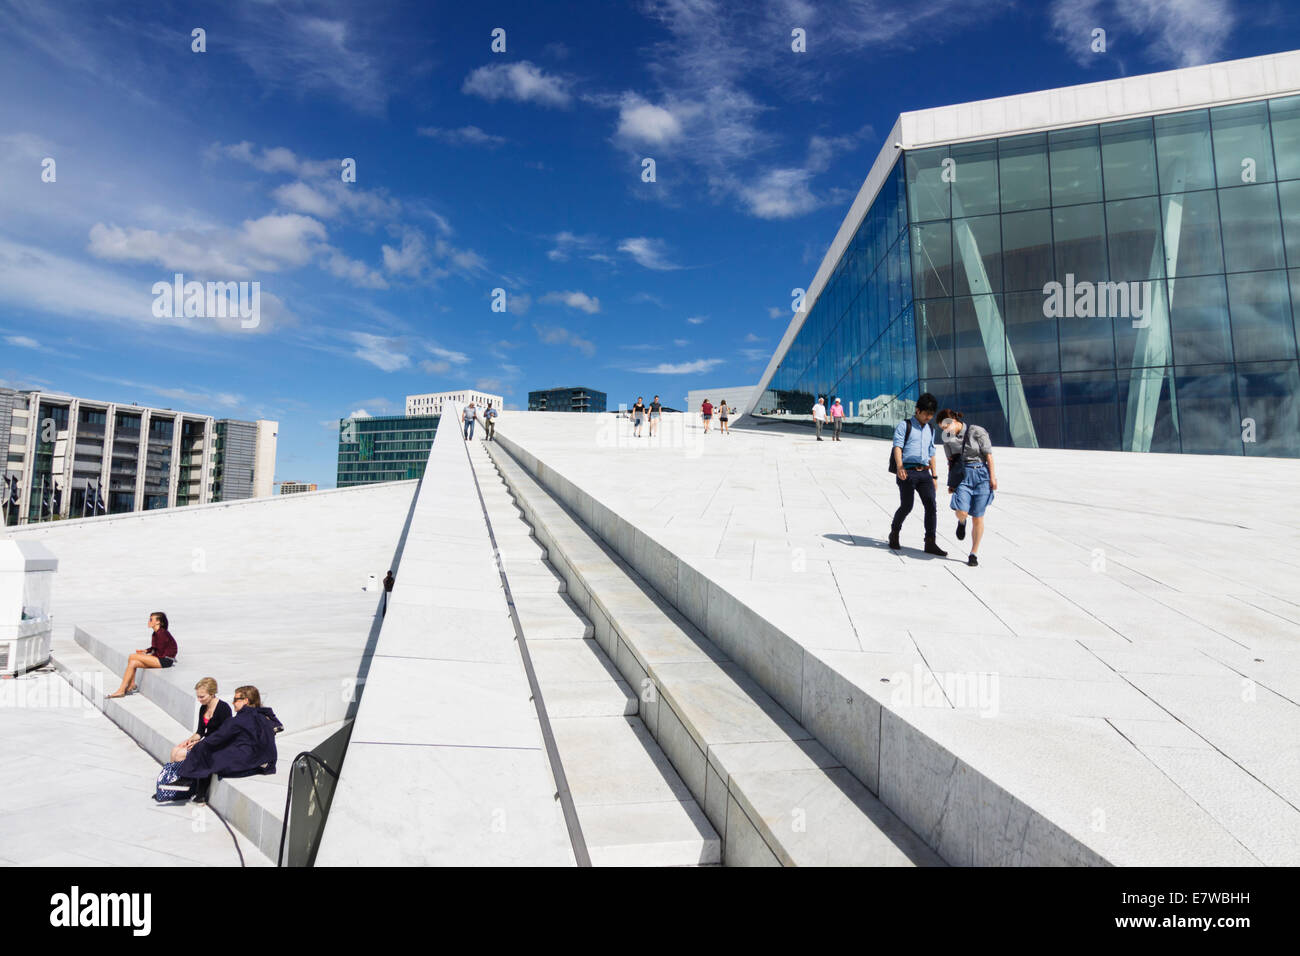 Opera Hall, Oslo, Norway - Stock Image